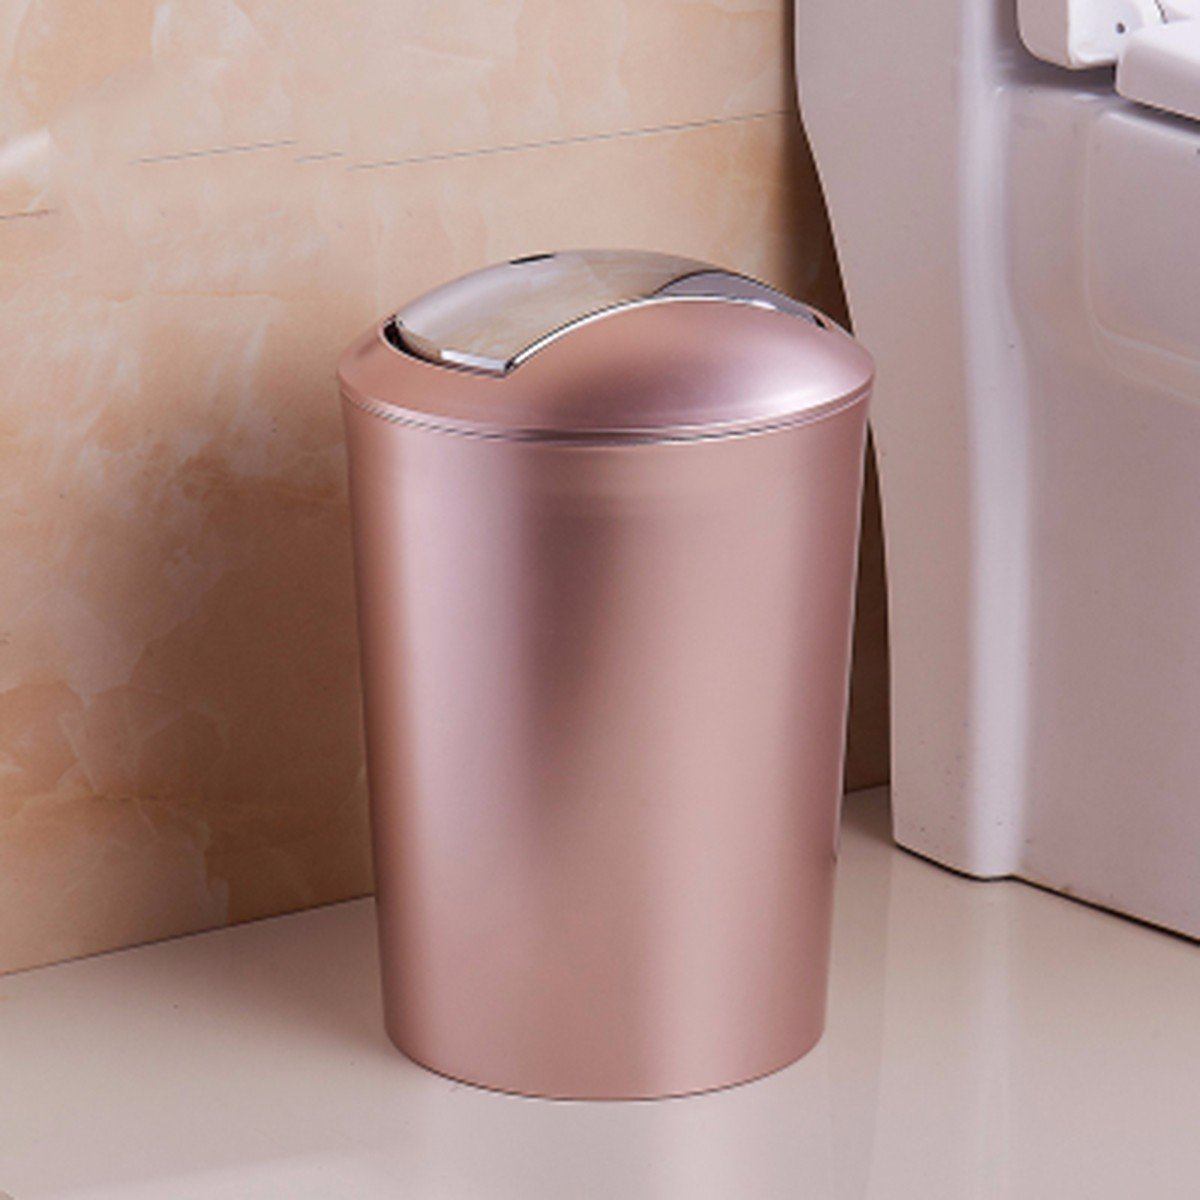 Hongruichang Bathroom And Toilet Big Creative Garbage Can Household Living Room Bedroom With Cover Type Garbage Cylinder European Simple Fashion,H